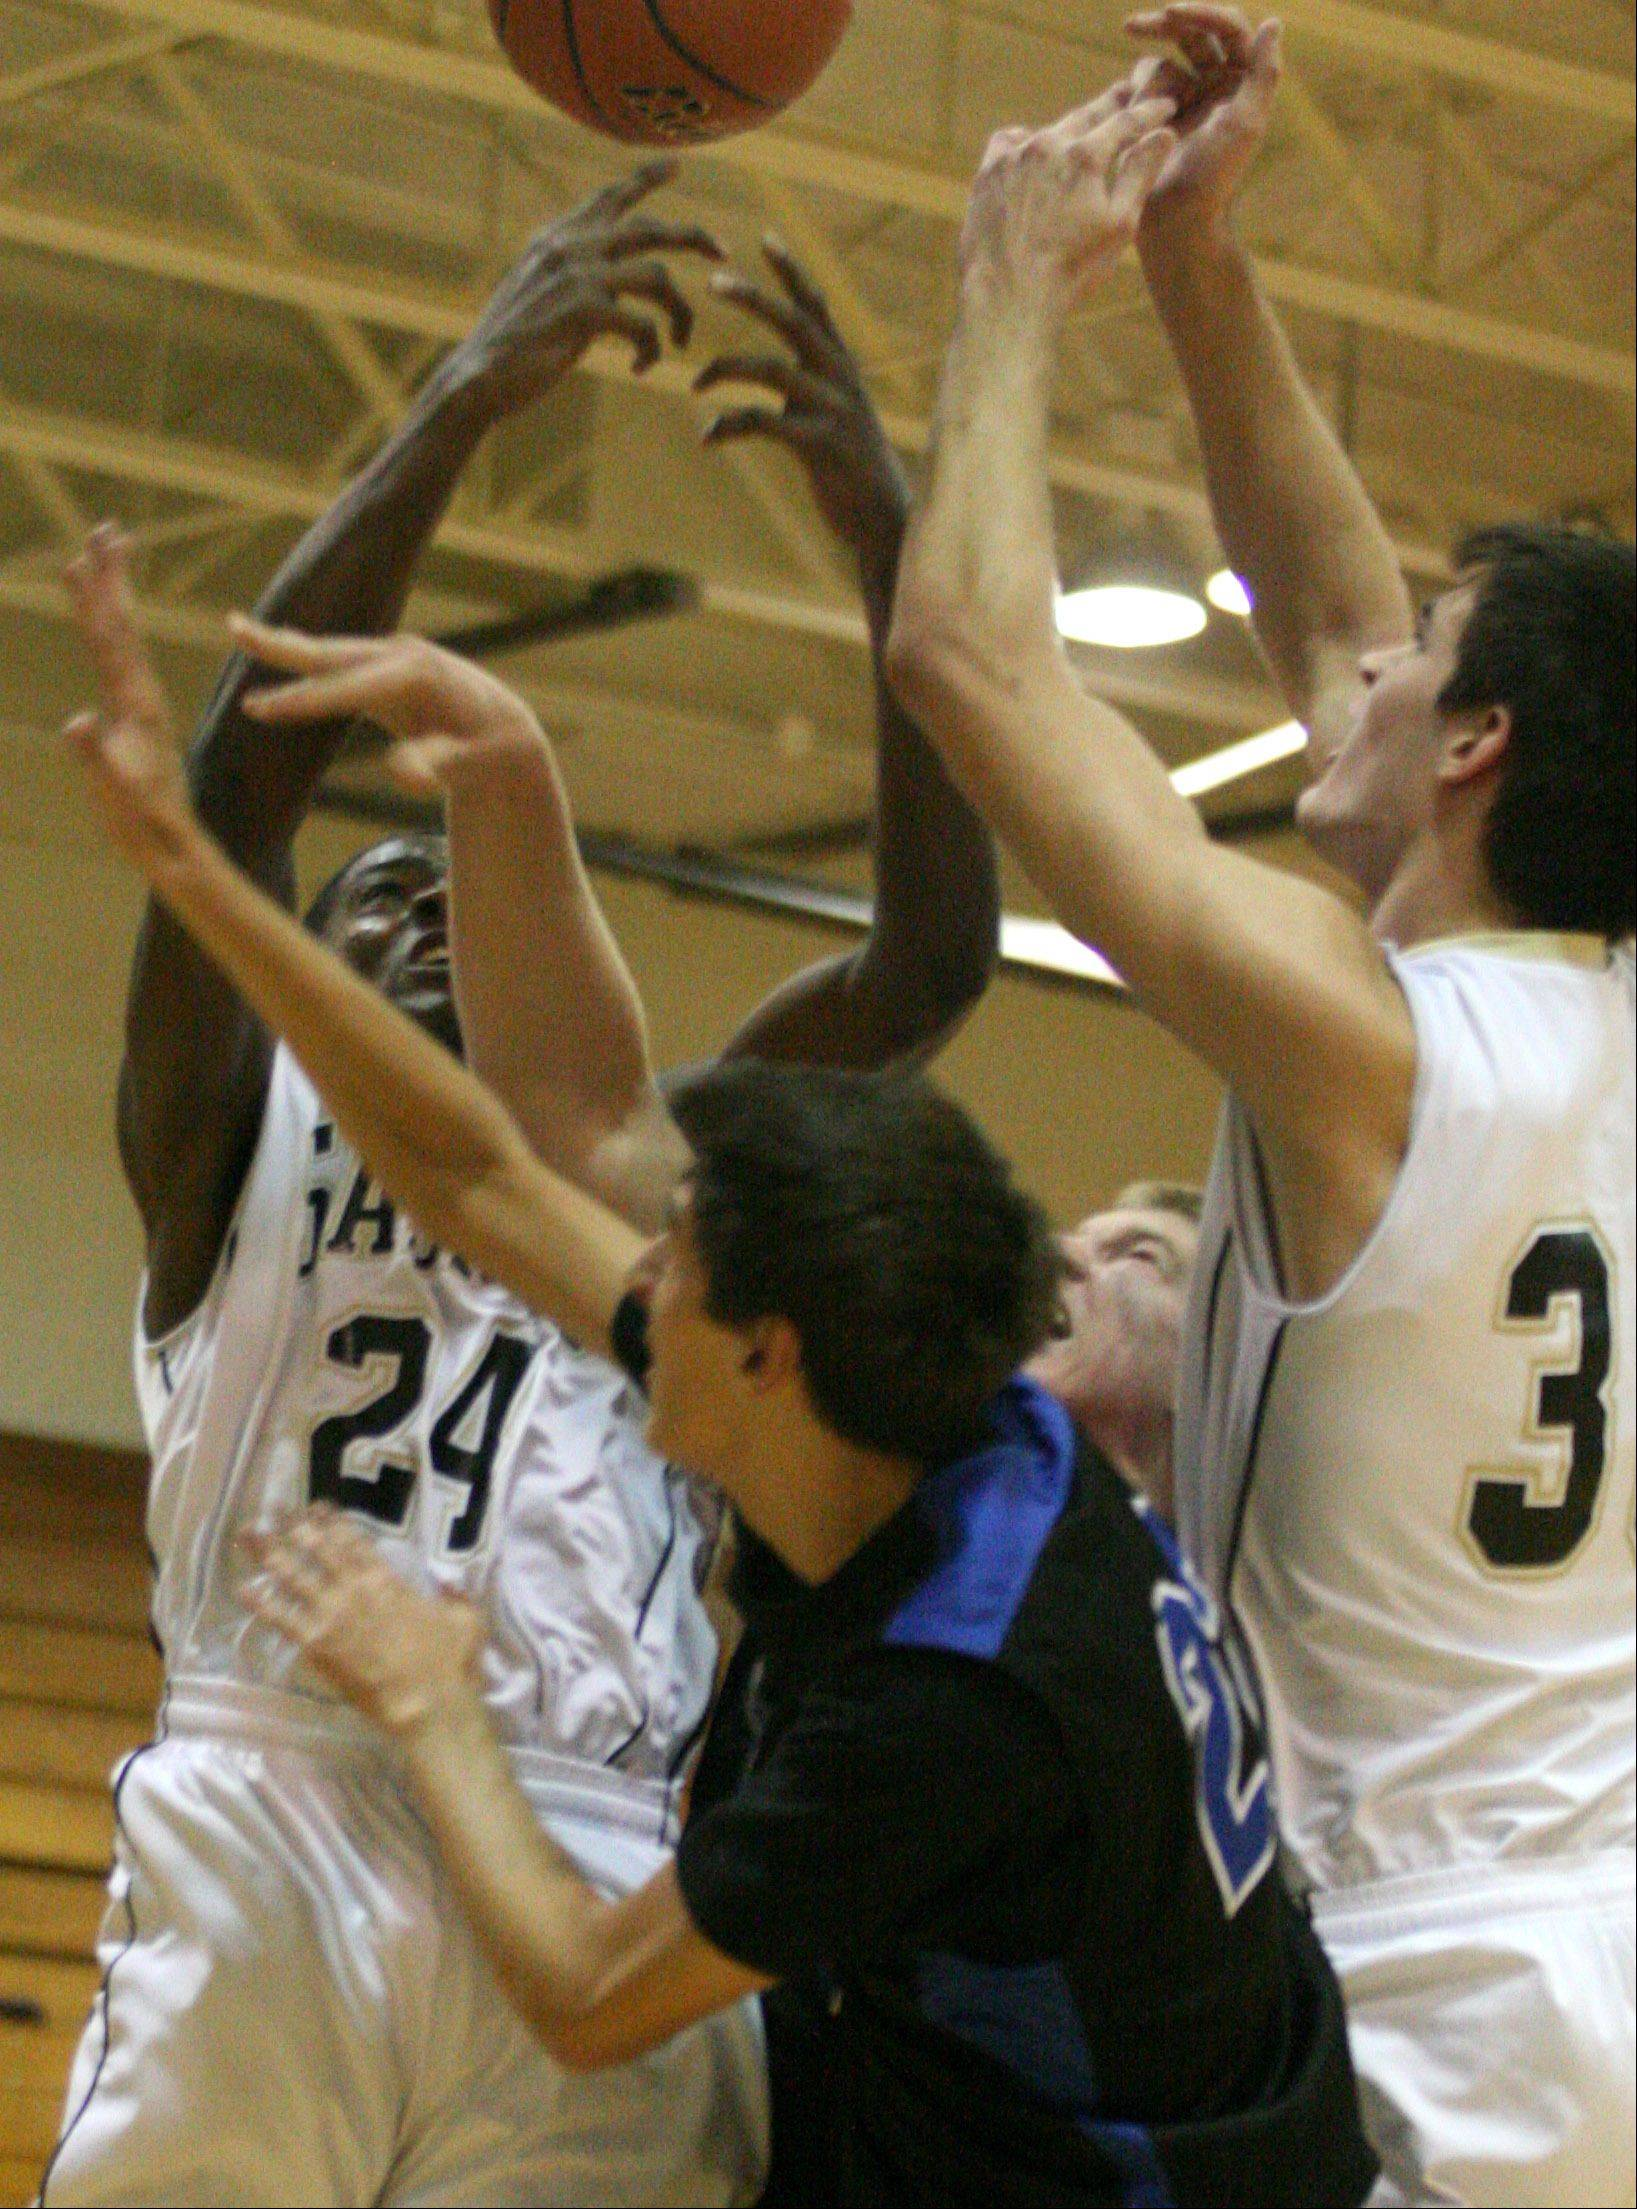 Images from the St. Charles North vs. Streamwood boys basketball game Thursday, November 29, 2012.